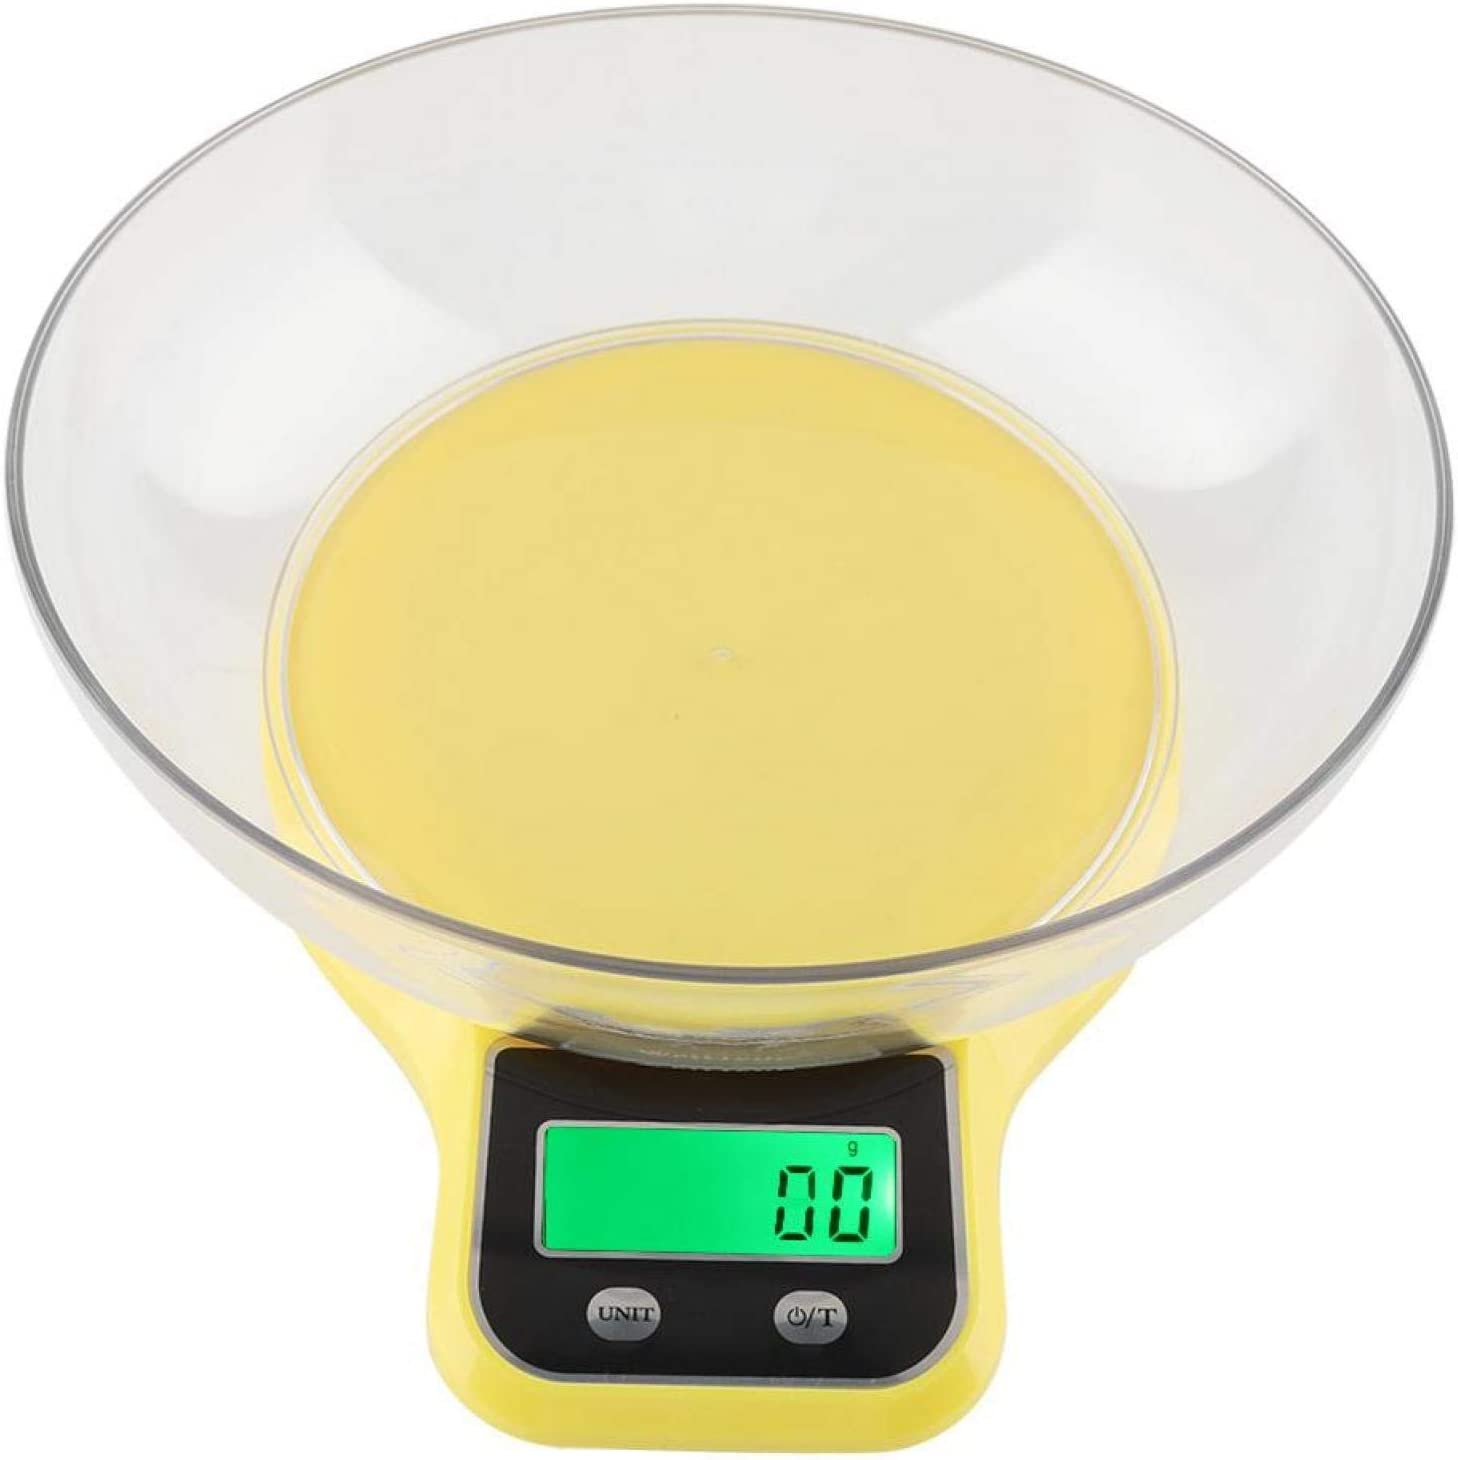 Digital Food Scale - WH-B21LW Kitchen Food Scale Digital Cooking Multifunction Weight Scale with Bowl(Yellow)